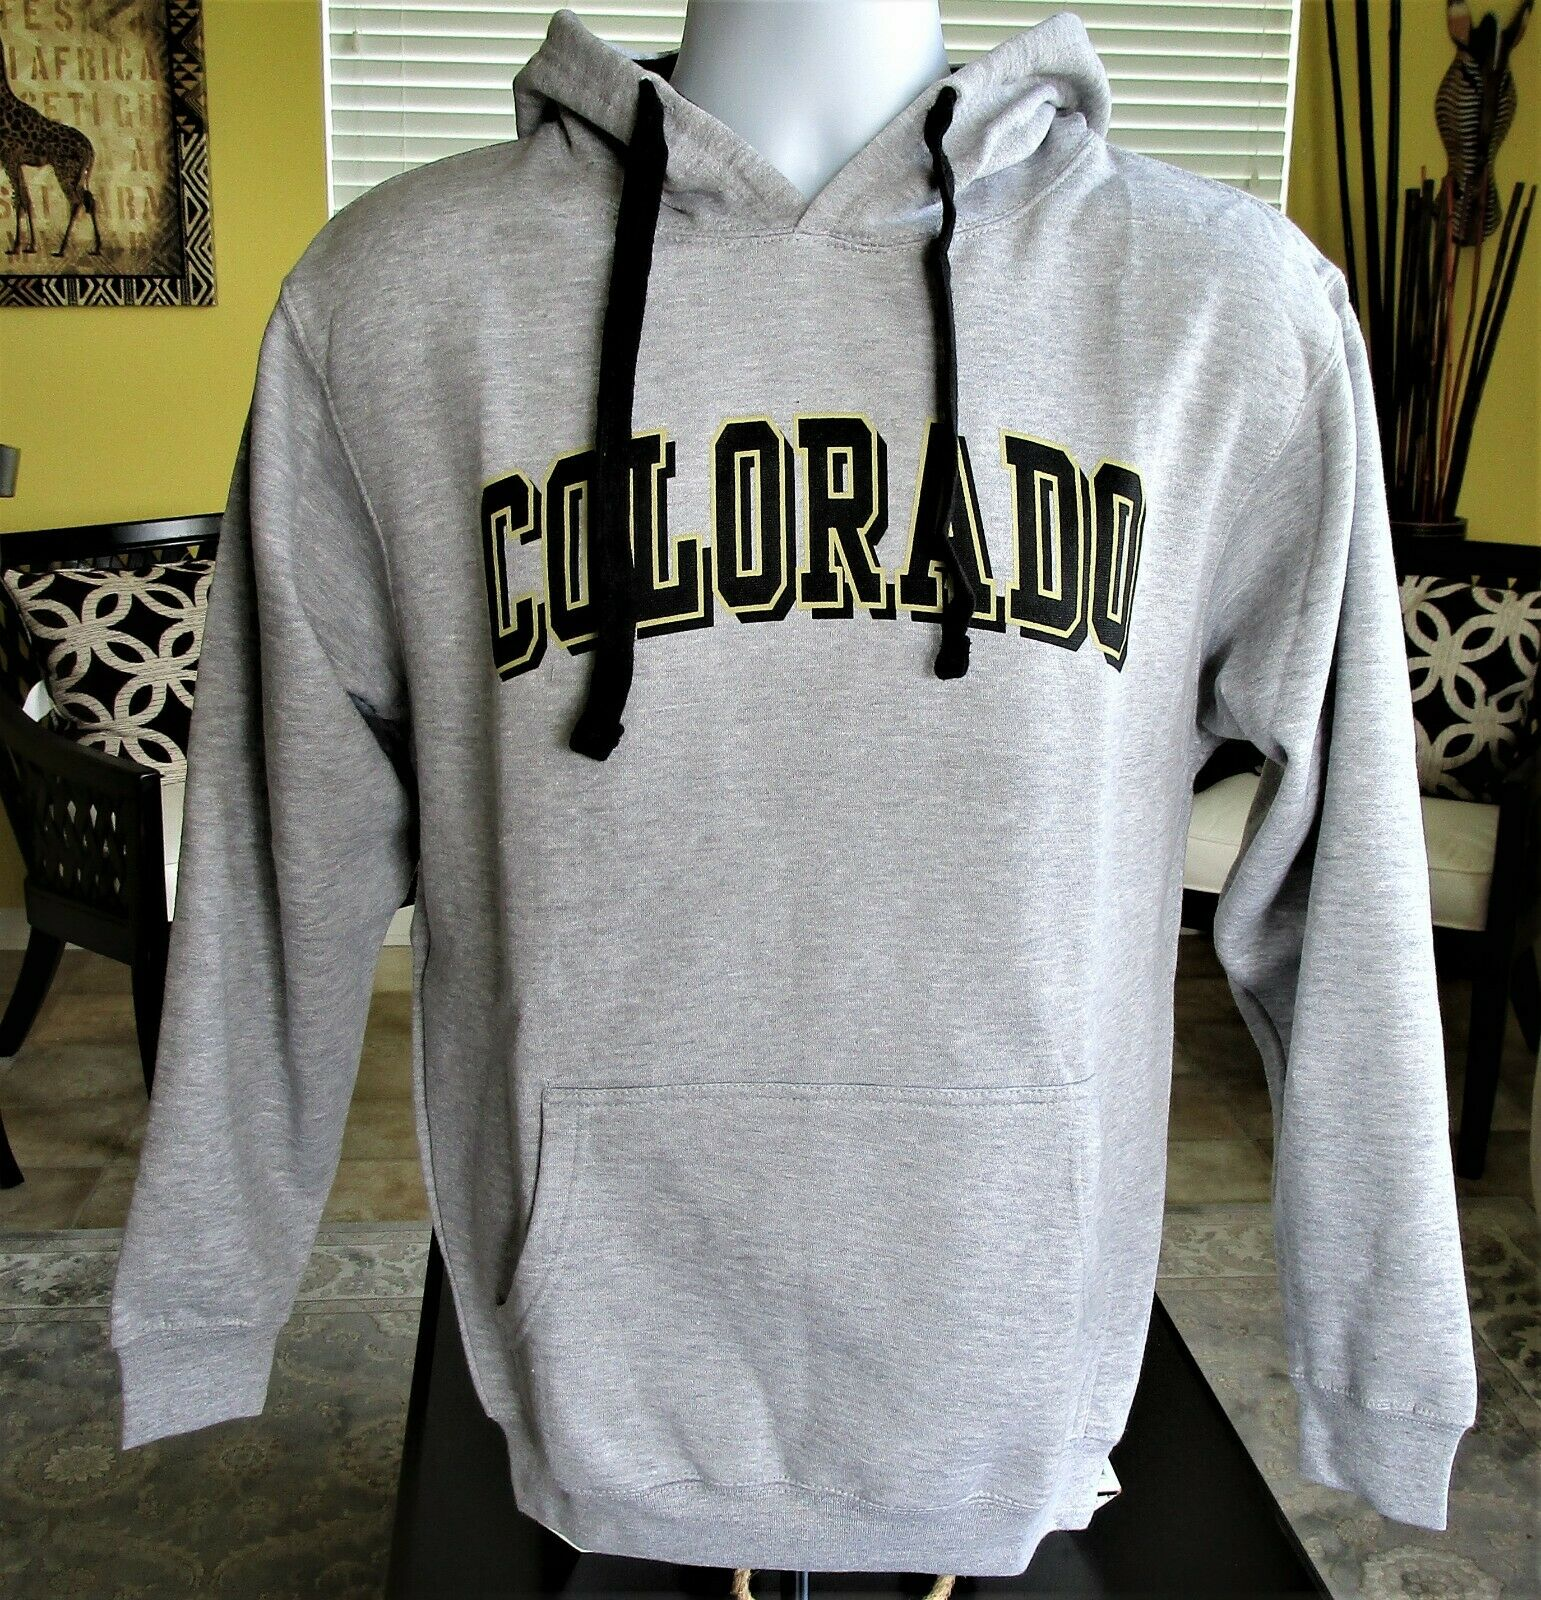 BS2U Mens Colorado Geo Graphic Hooded Hoodies Sweatshirt Pullover Tops